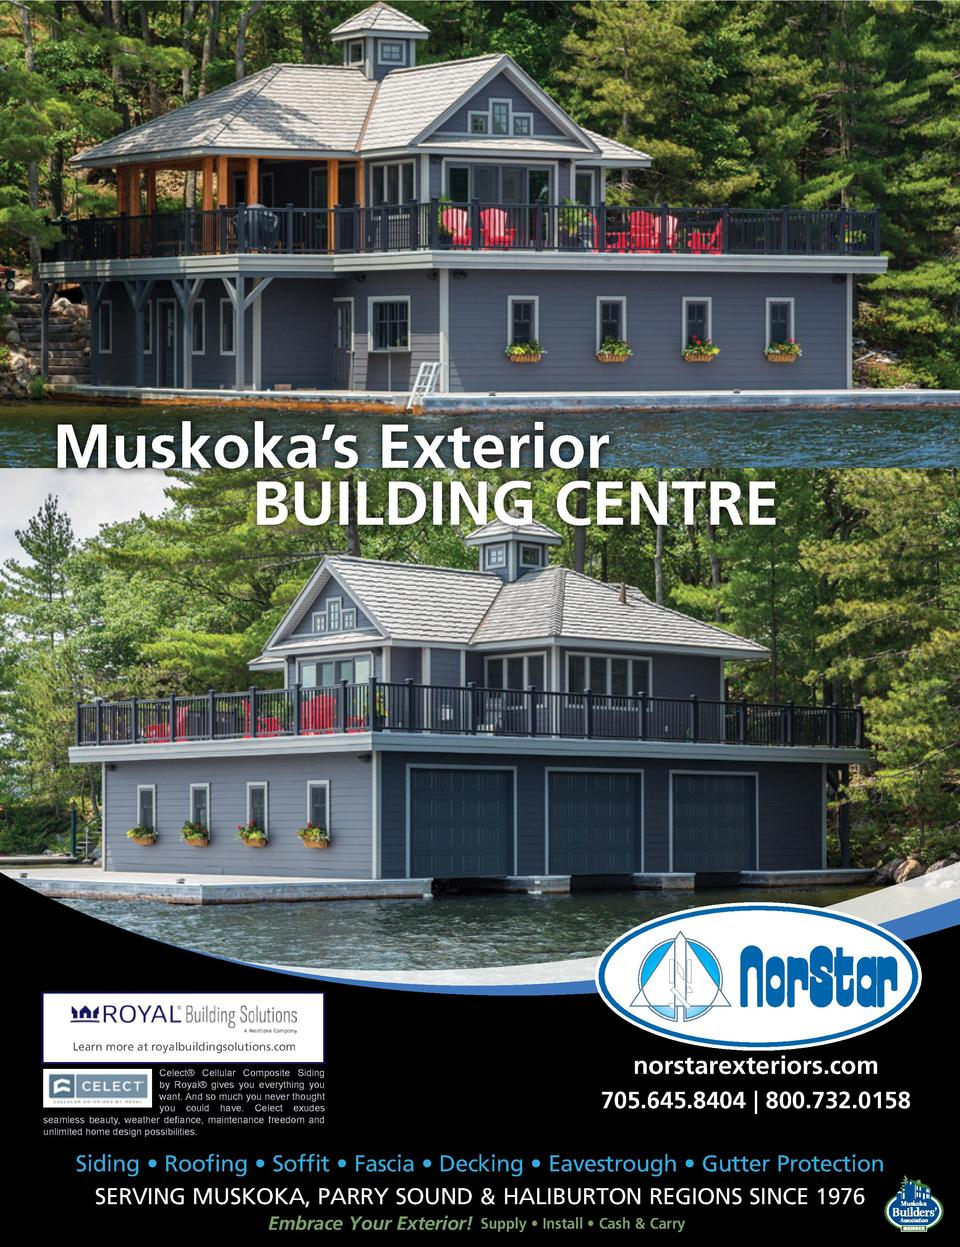 Muskoka   s Exterior BUILDING CENTRE  Learn more at royalbuildingsolutions.com Celect   Cellular Composite Siding by Royal...